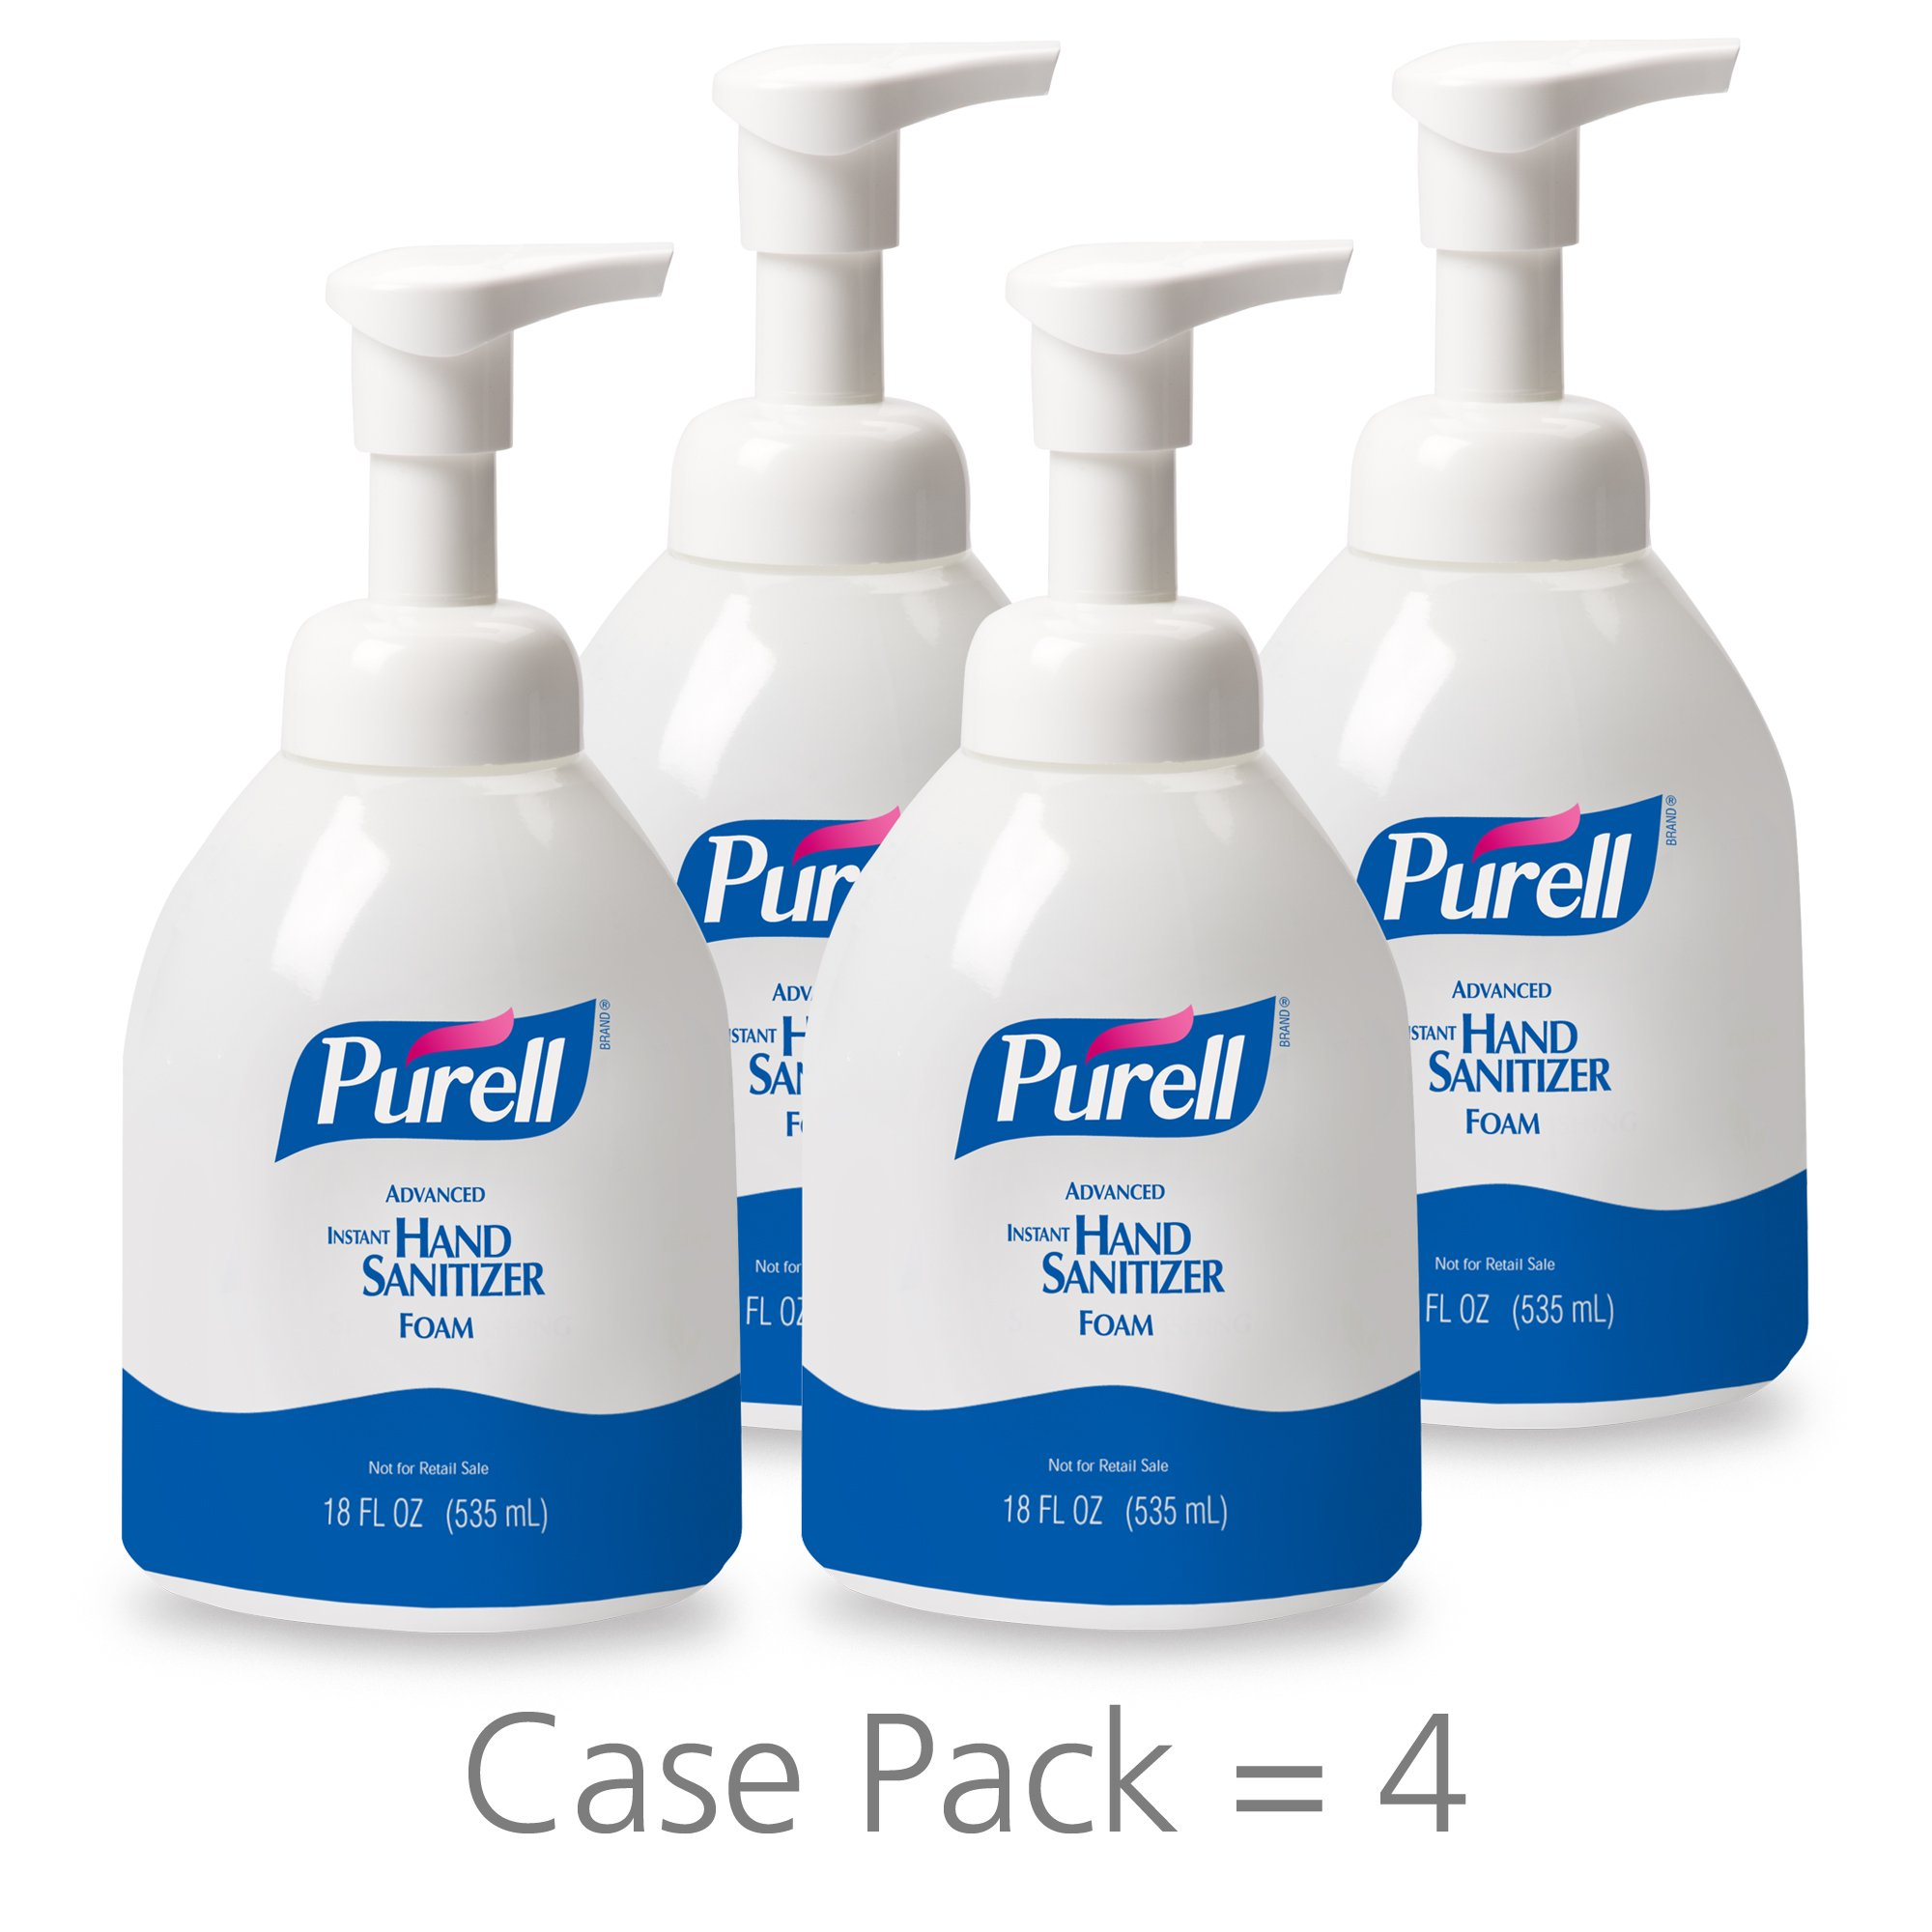 PURELL Healthcare Advanced Hand Sanitizer Foam, Clean Scent, 18 fl oz Pump Bottle (Pack of 4) - 5792-04 by Purell